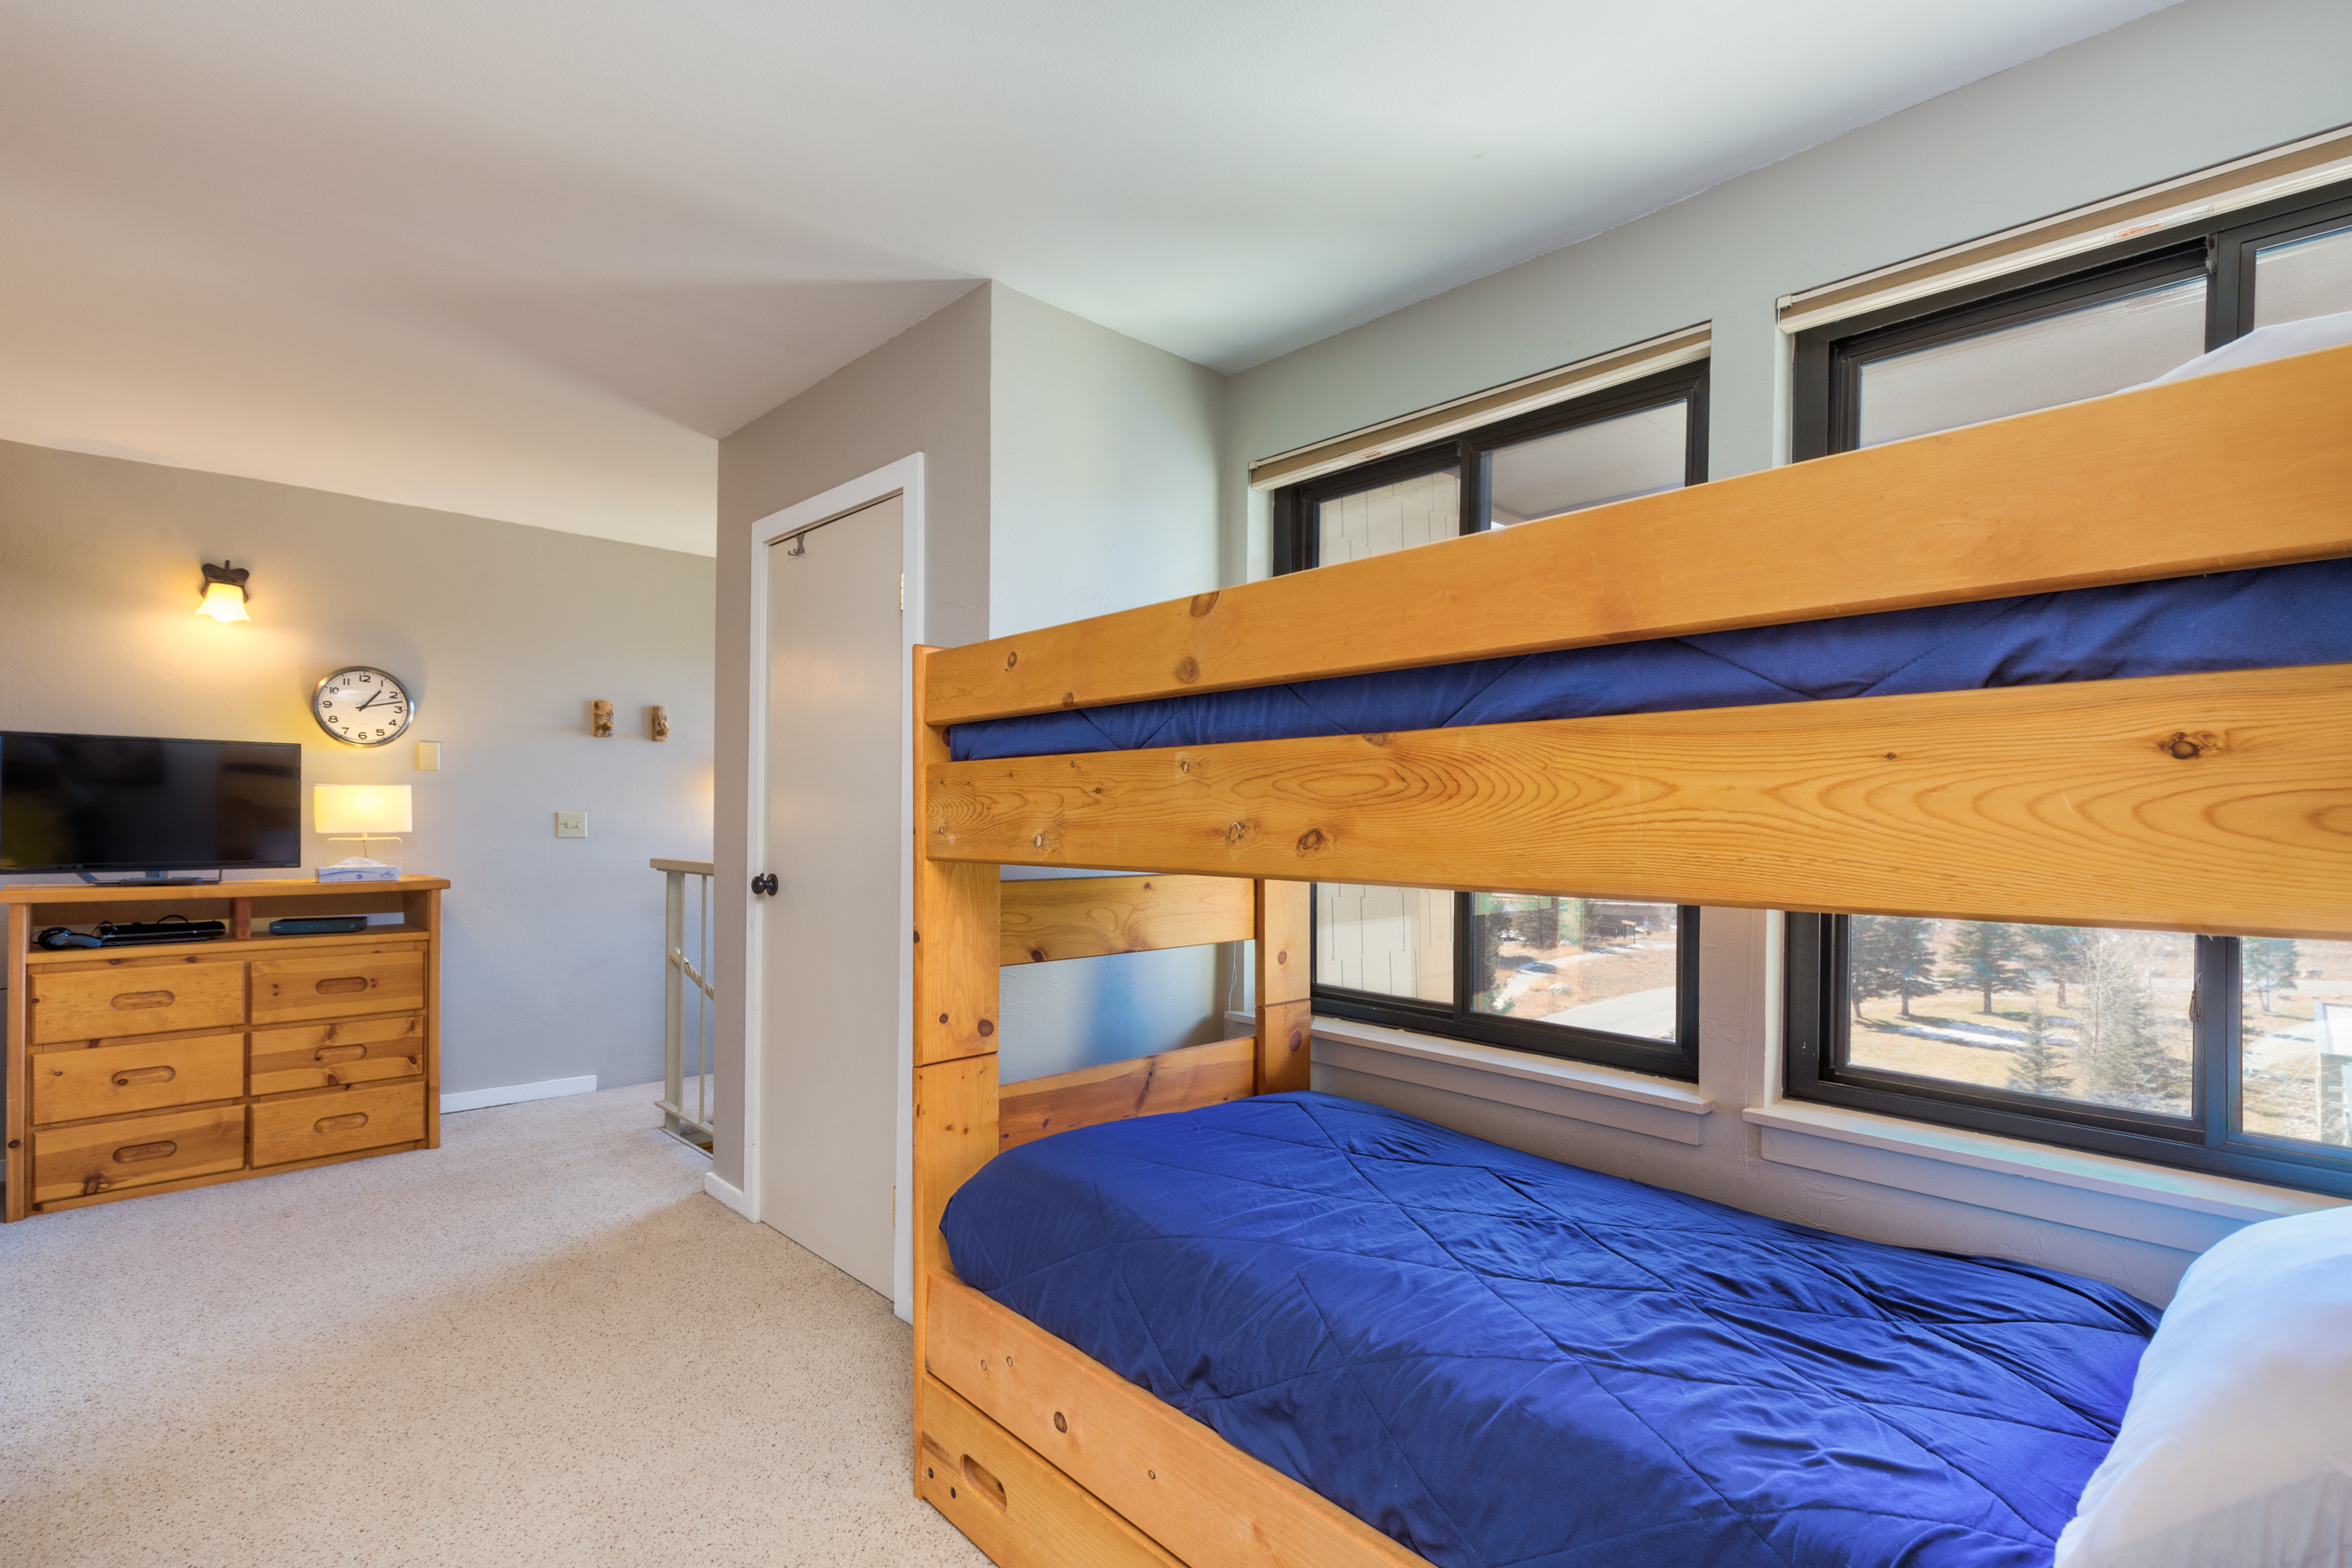 The second bedroom is in the upstairs loft and features a bunk bed with a twin trundle and a flat screen TV.